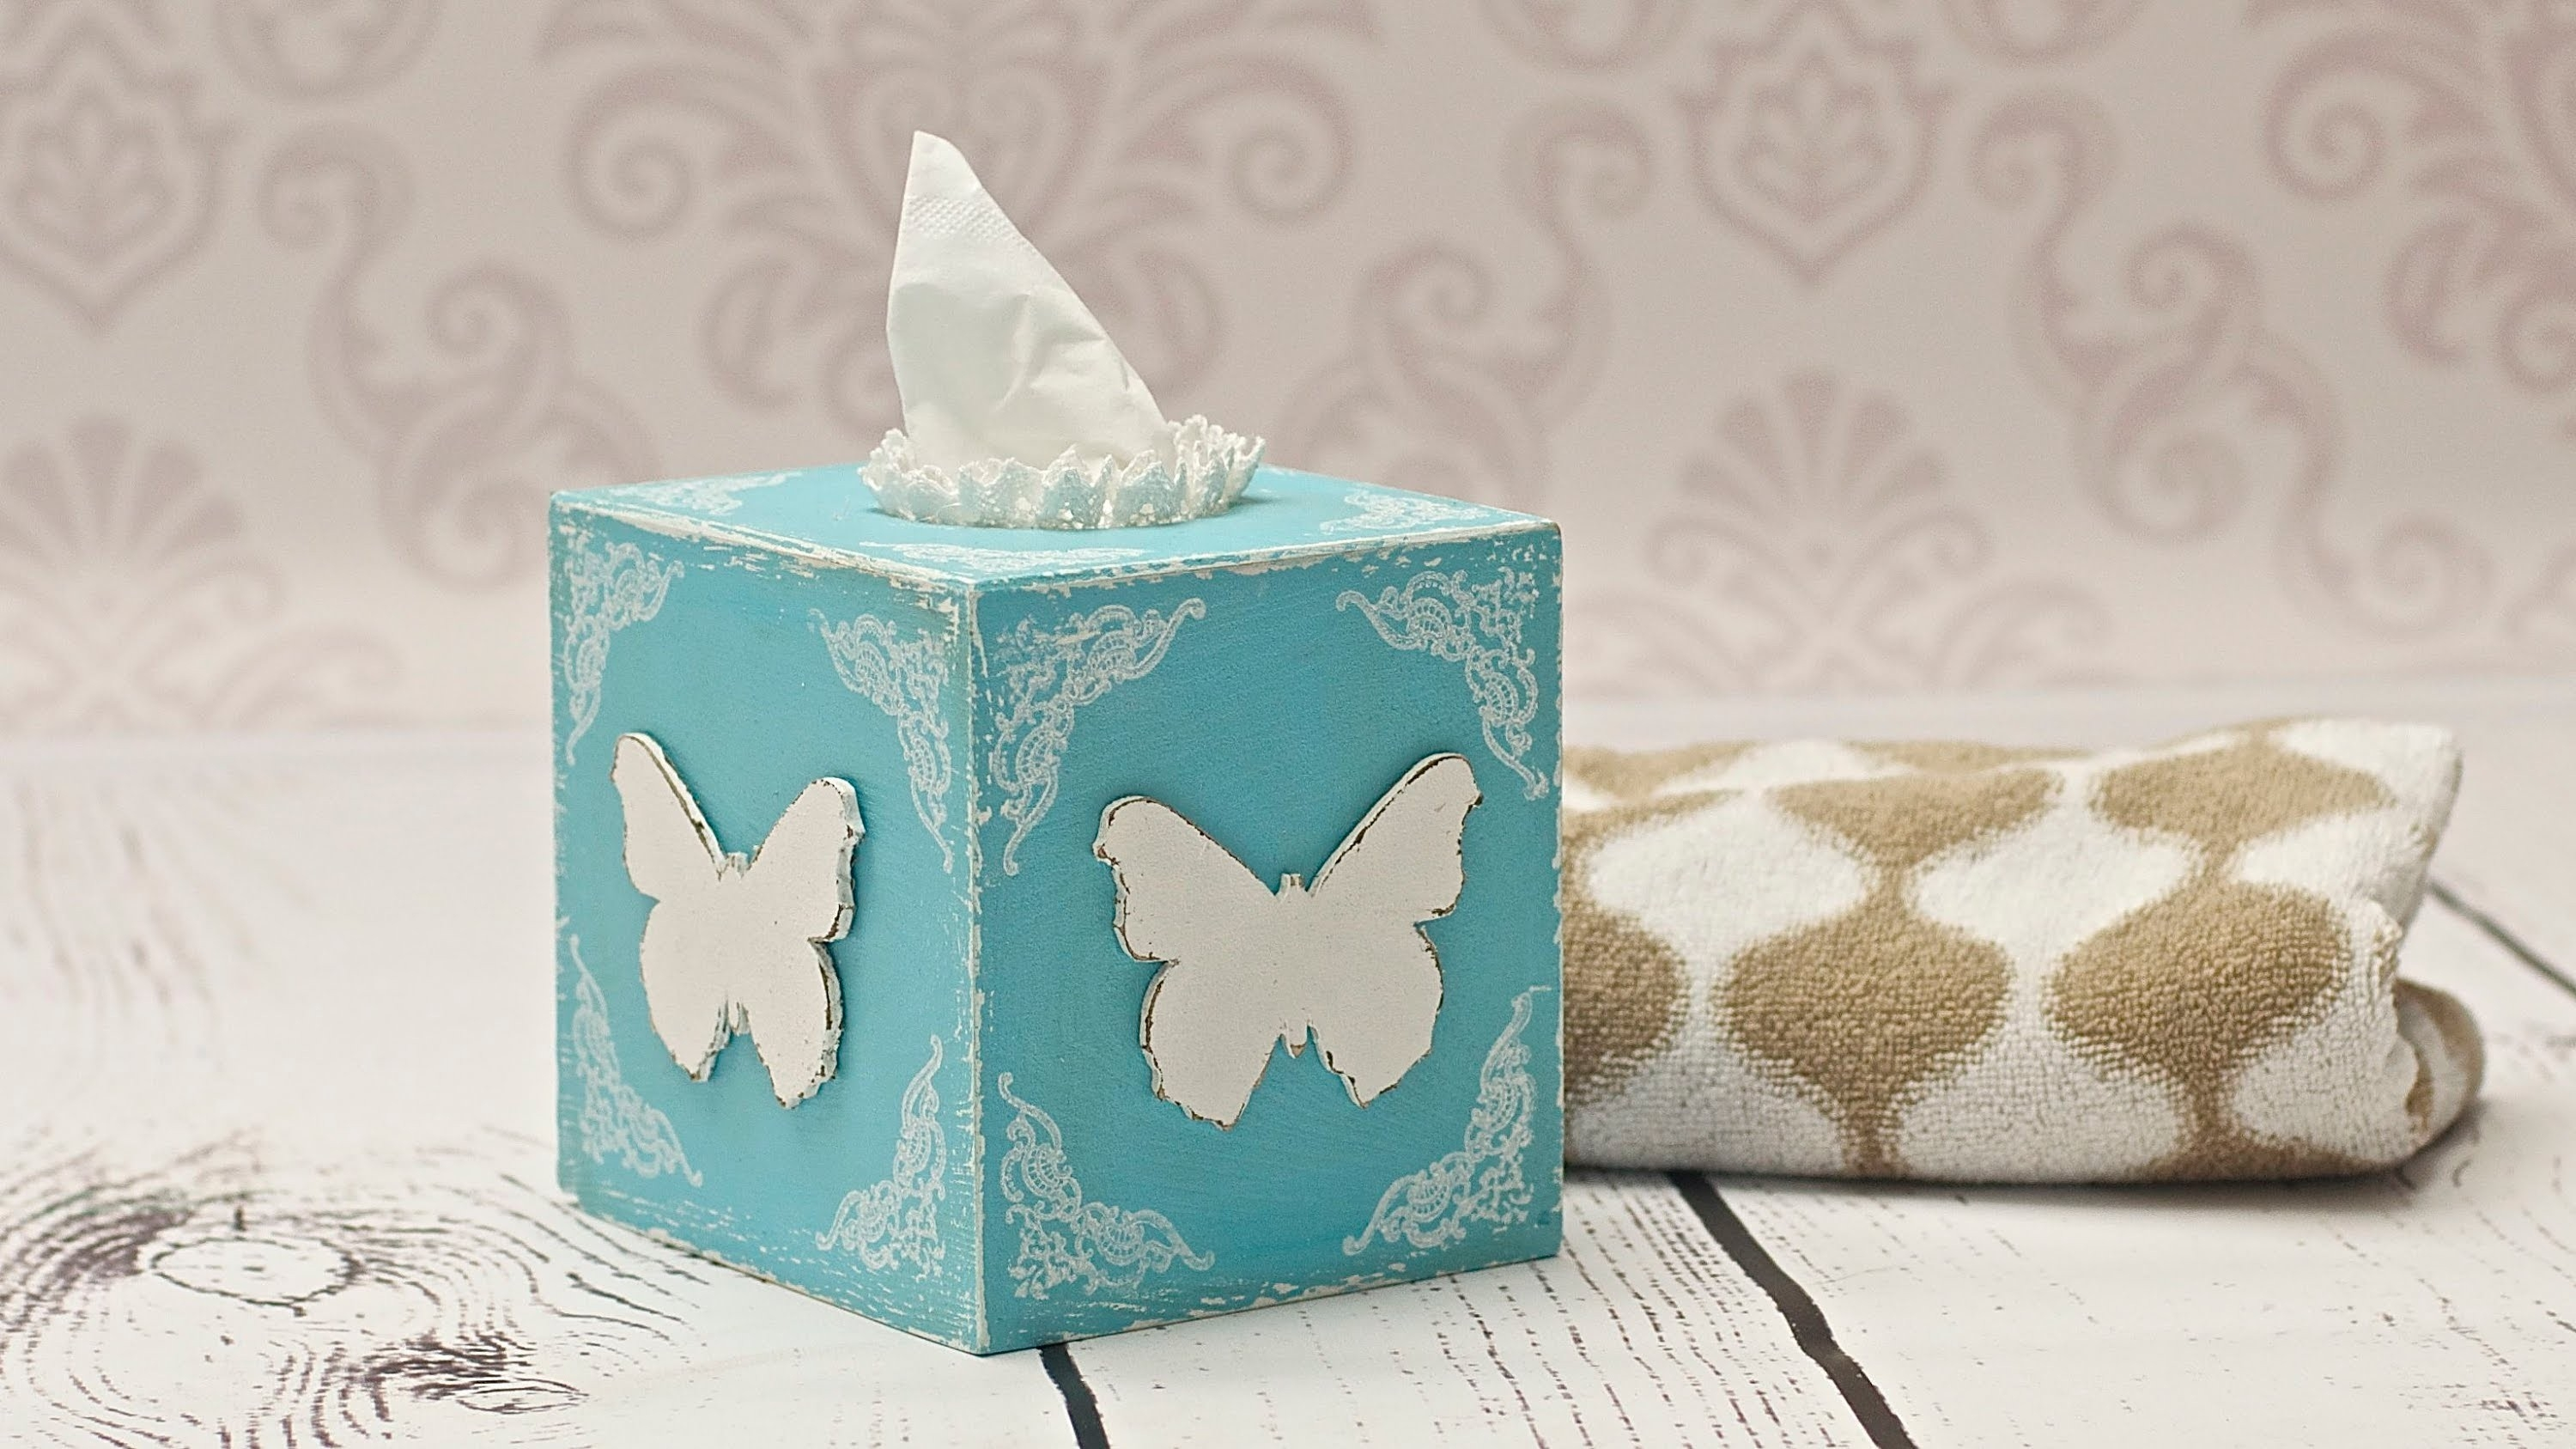 How To Decorate A Tissue Box - Decoupage Diy By Catherine - Youtube intended for Tissue Paper Decoupage Crafts 27554